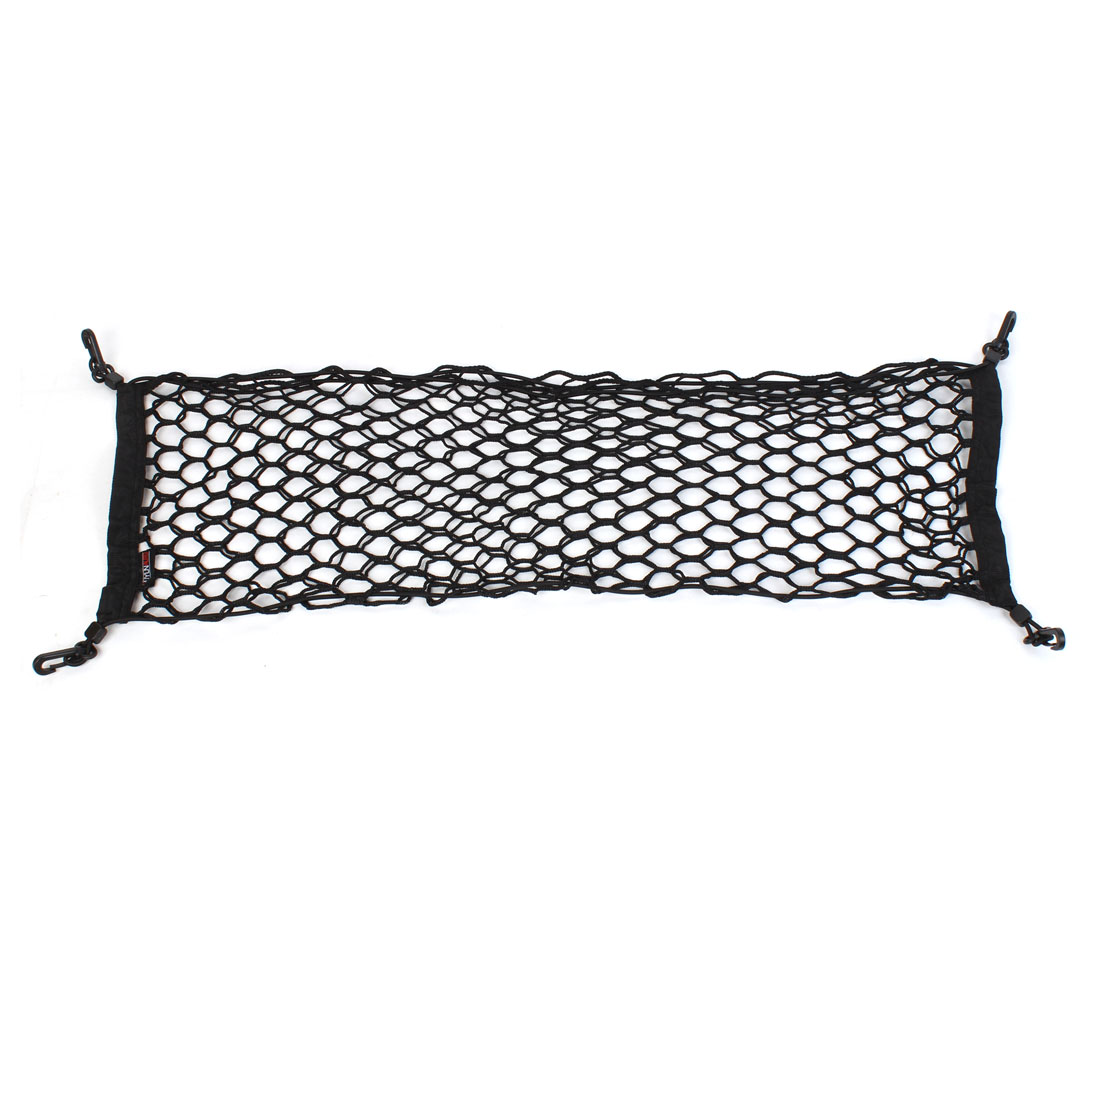 Luggage Storage Double Layer Mesh Elasticated Car Cargo Net w Lobster Clasp